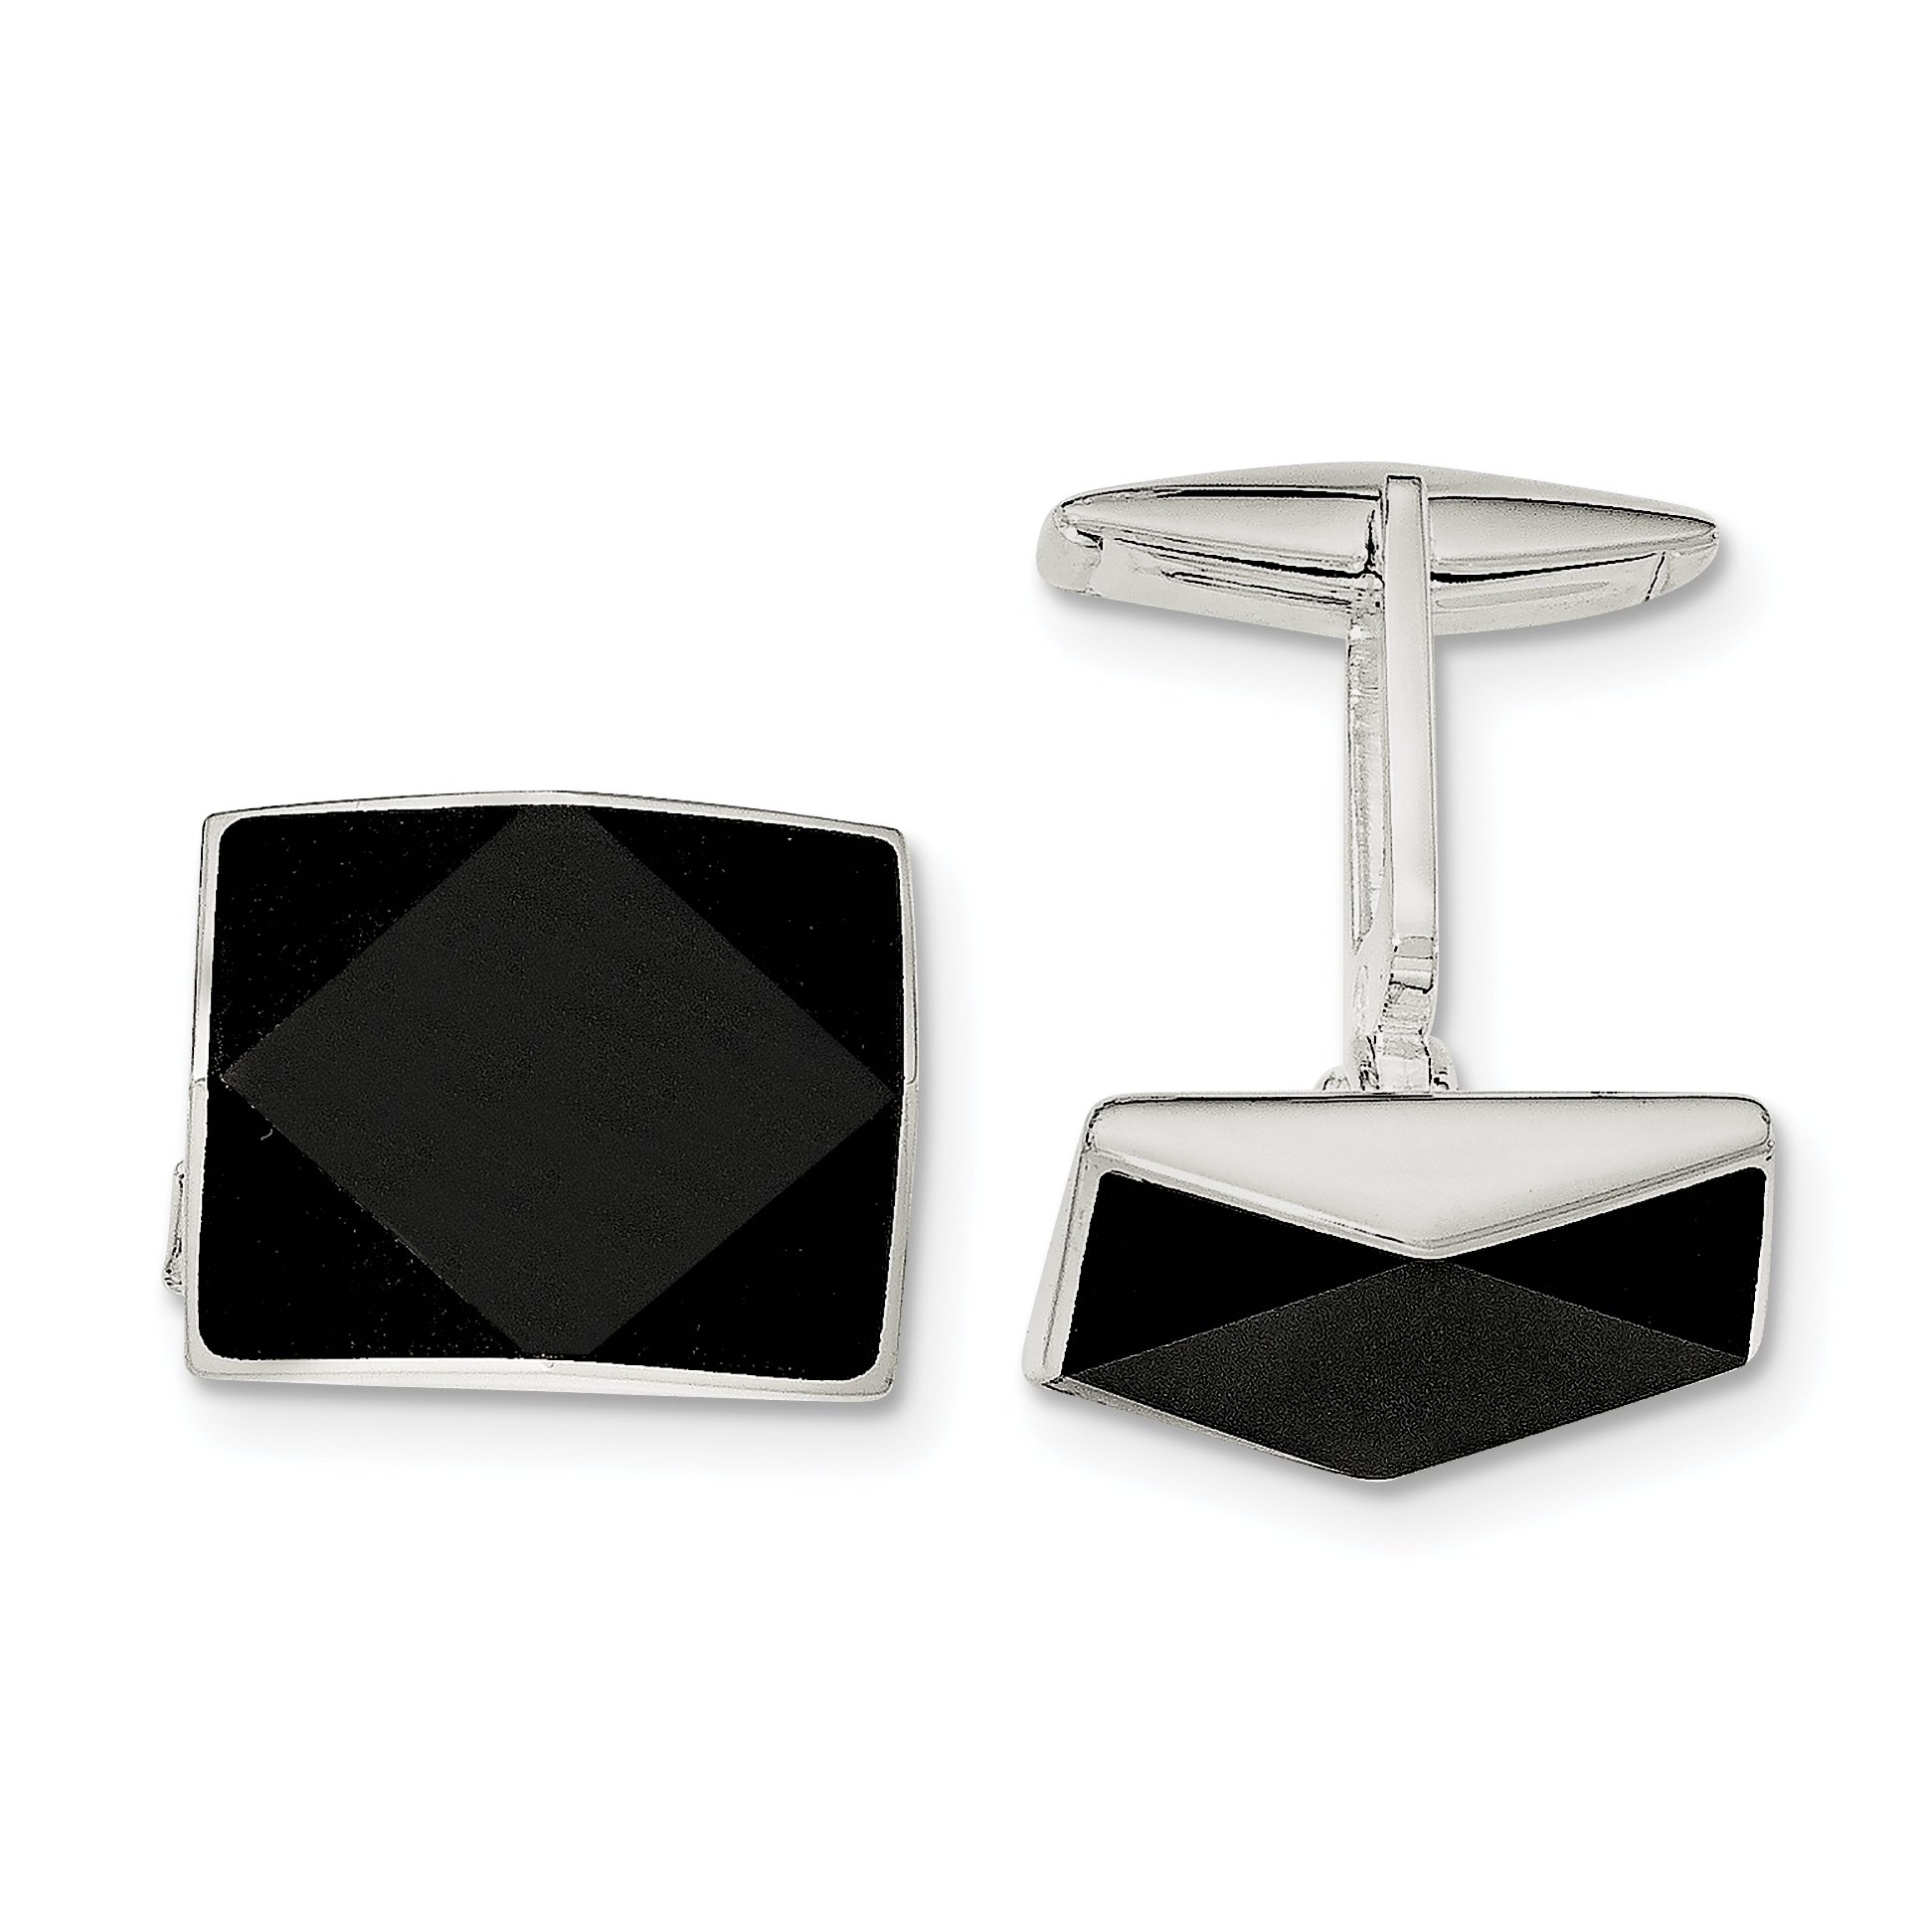 ICE CARATS 925 Sterling Silver Black Onyx Cuff Links Mens Cufflinks Link Fine Jewelry Dad Mens Gift Set